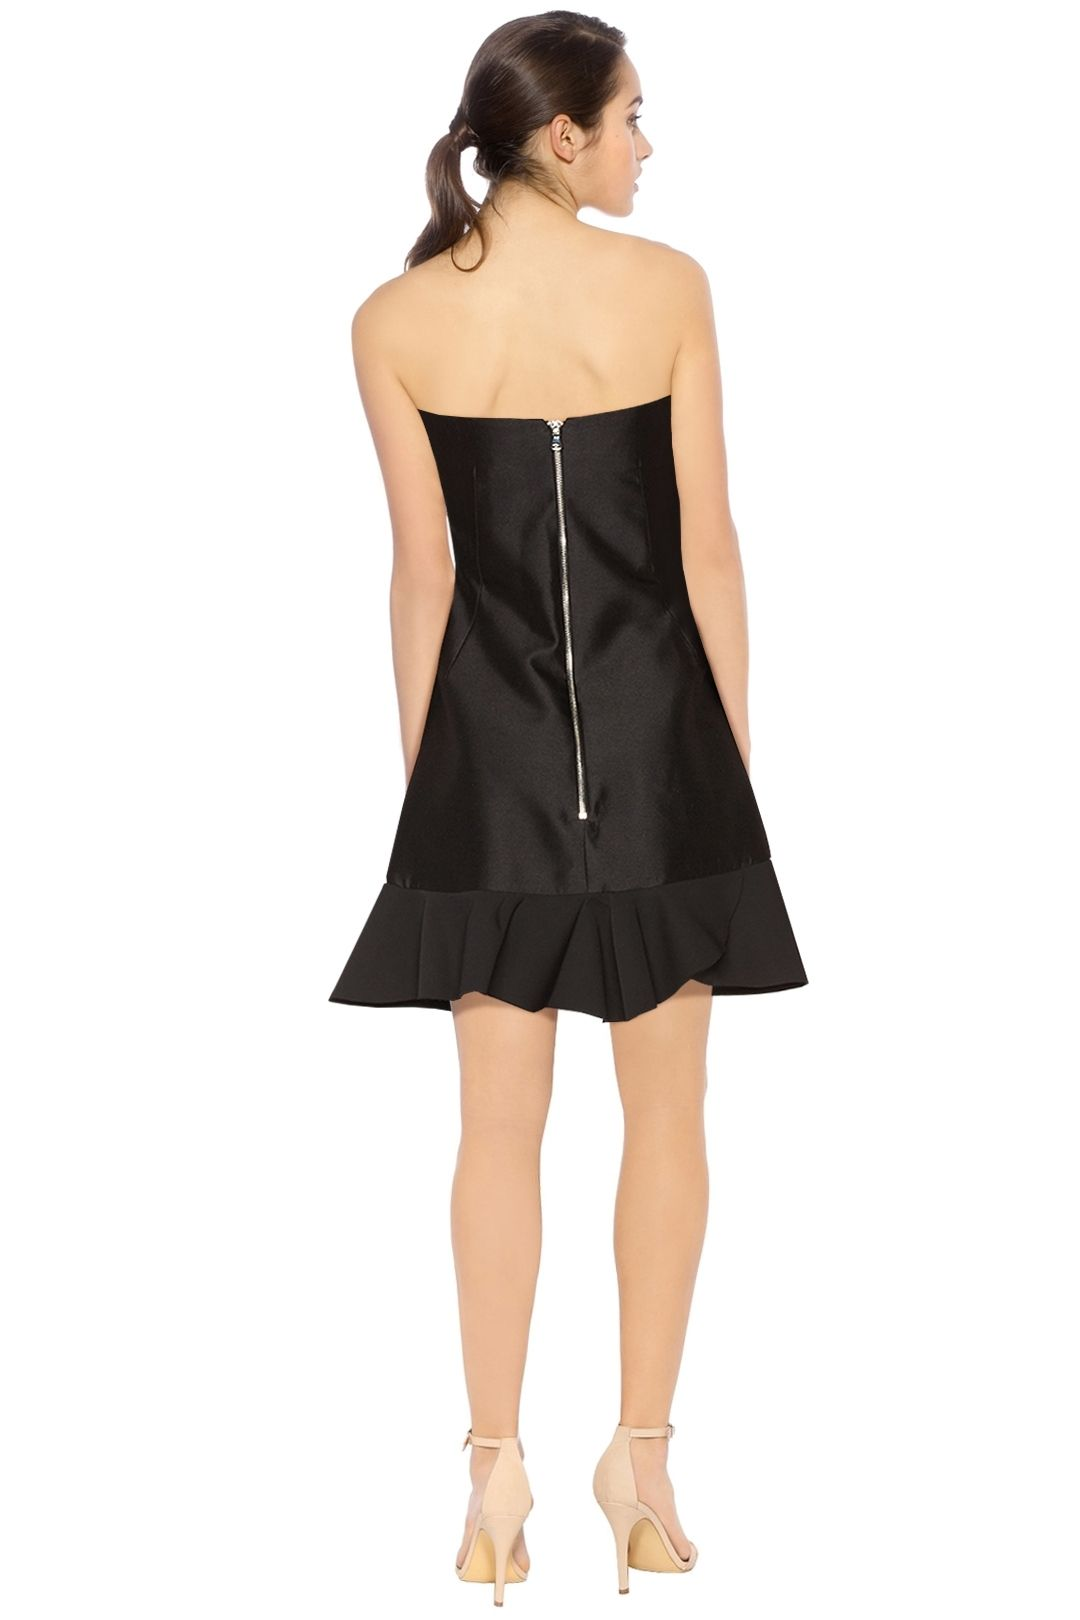 By Johnny - Tess Angel Frill Mini Dress - Black - Back